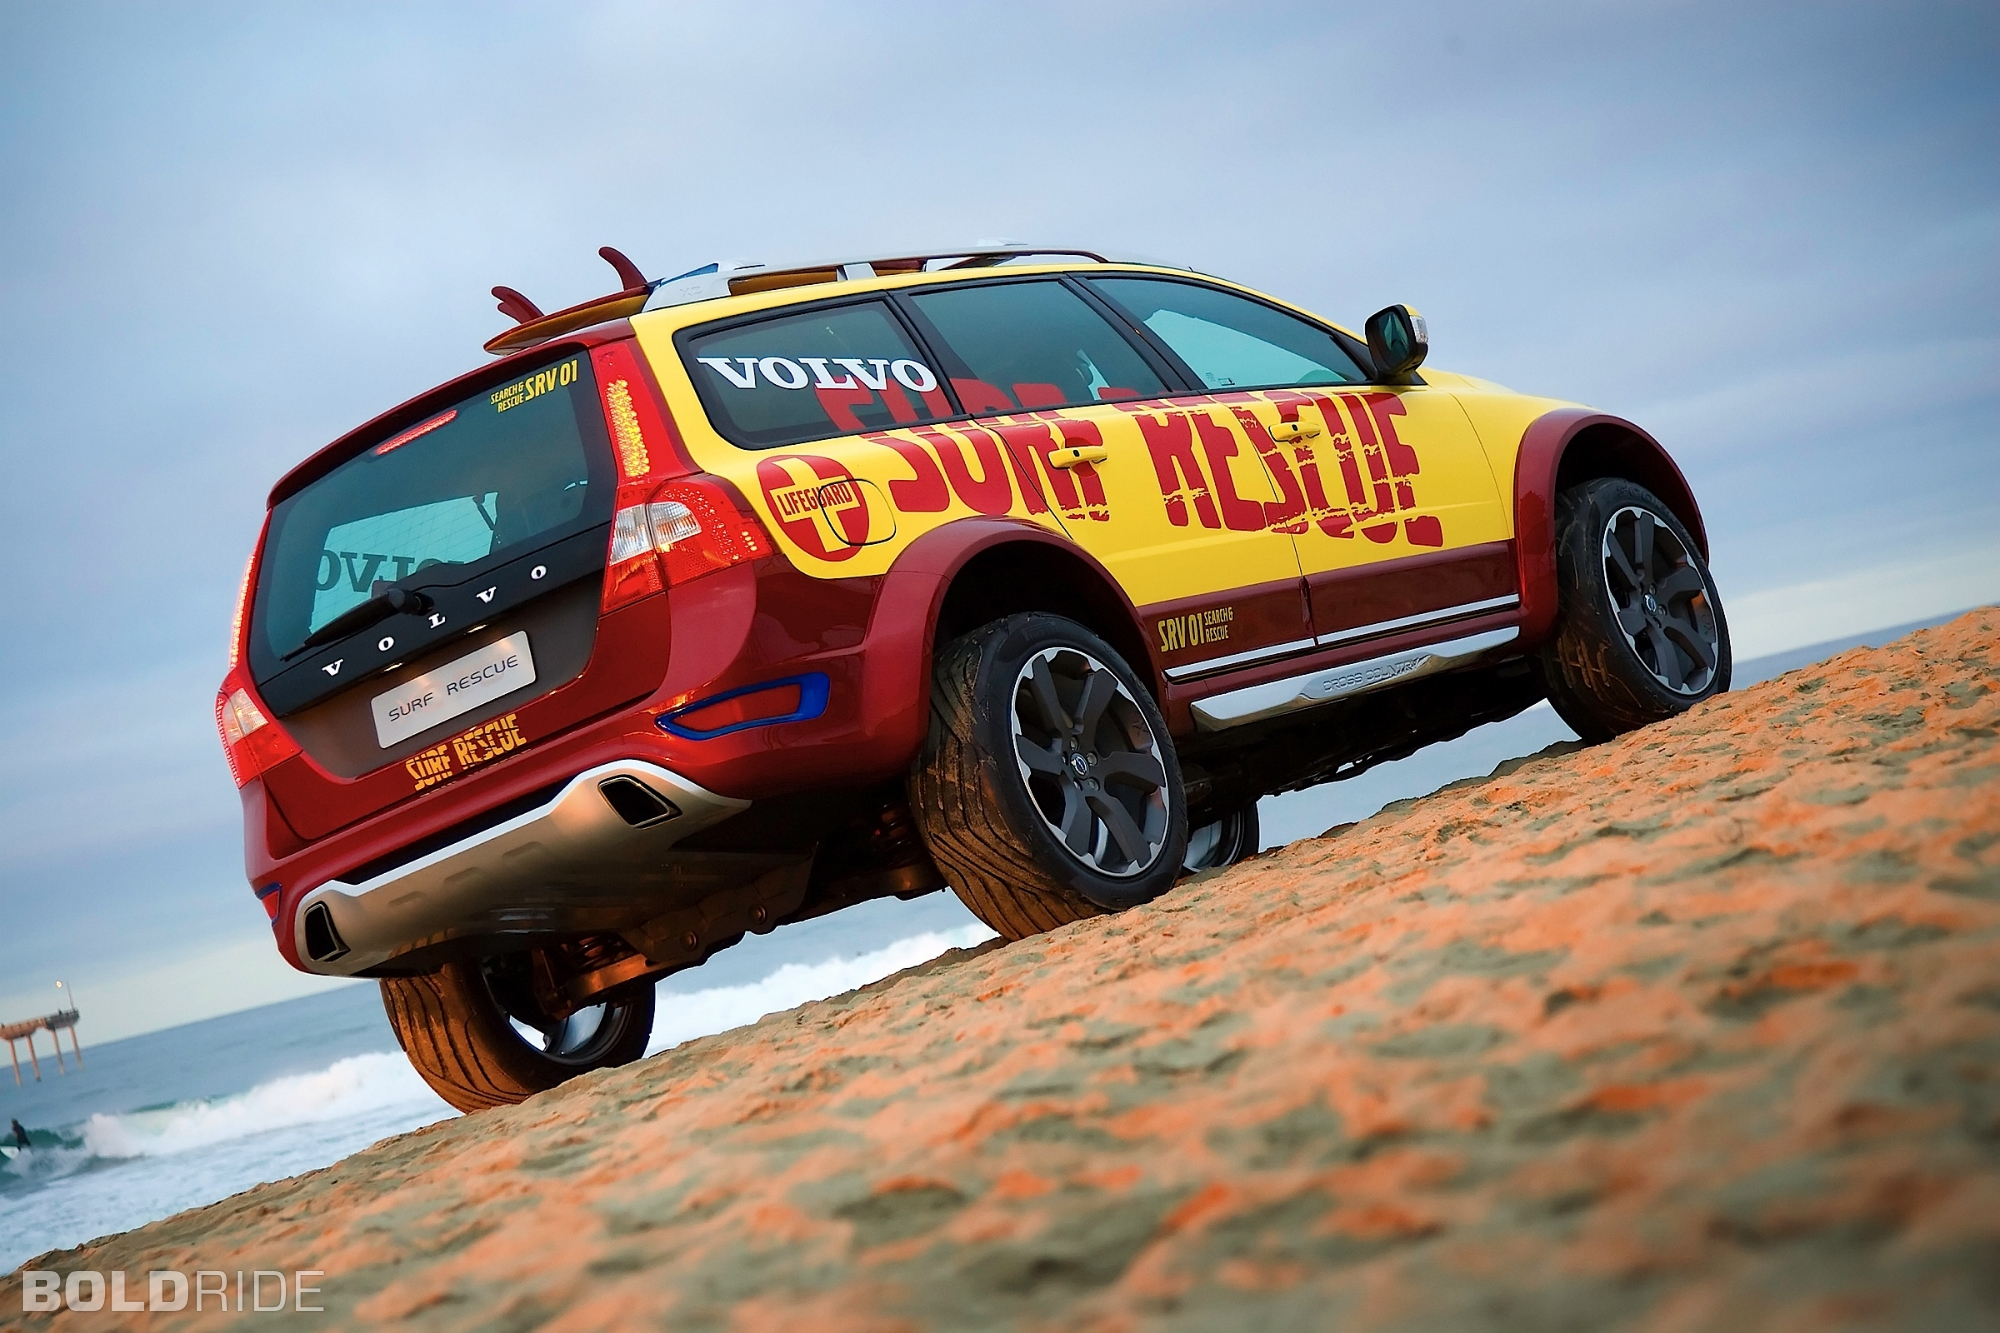 2019 Volvo XC70 Surf Rescue Concept photo - 6